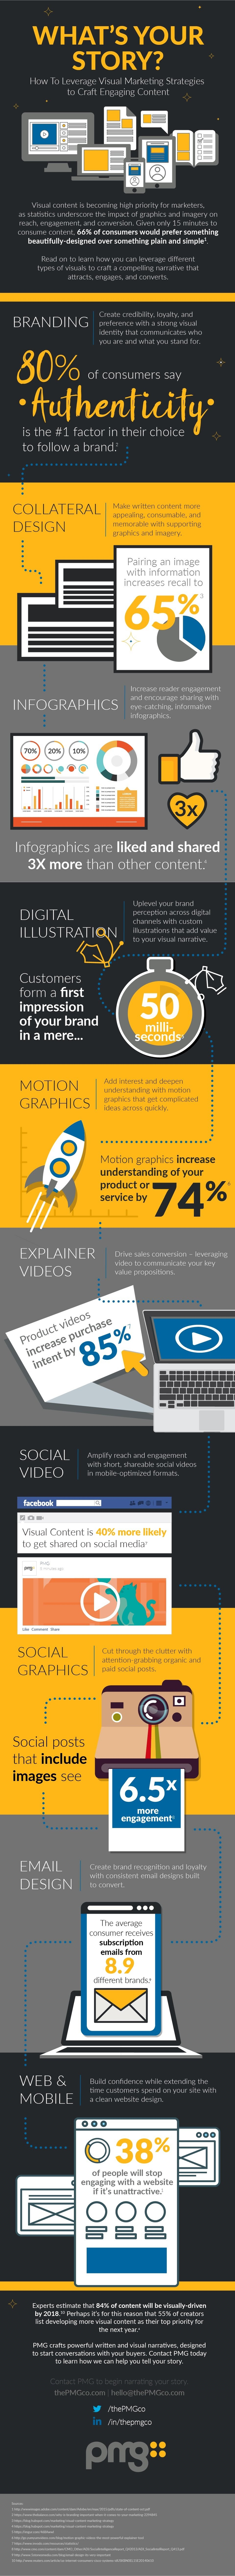 How To Leverage Visual Marketing Strategies to Craft Engaging Content - #infographic